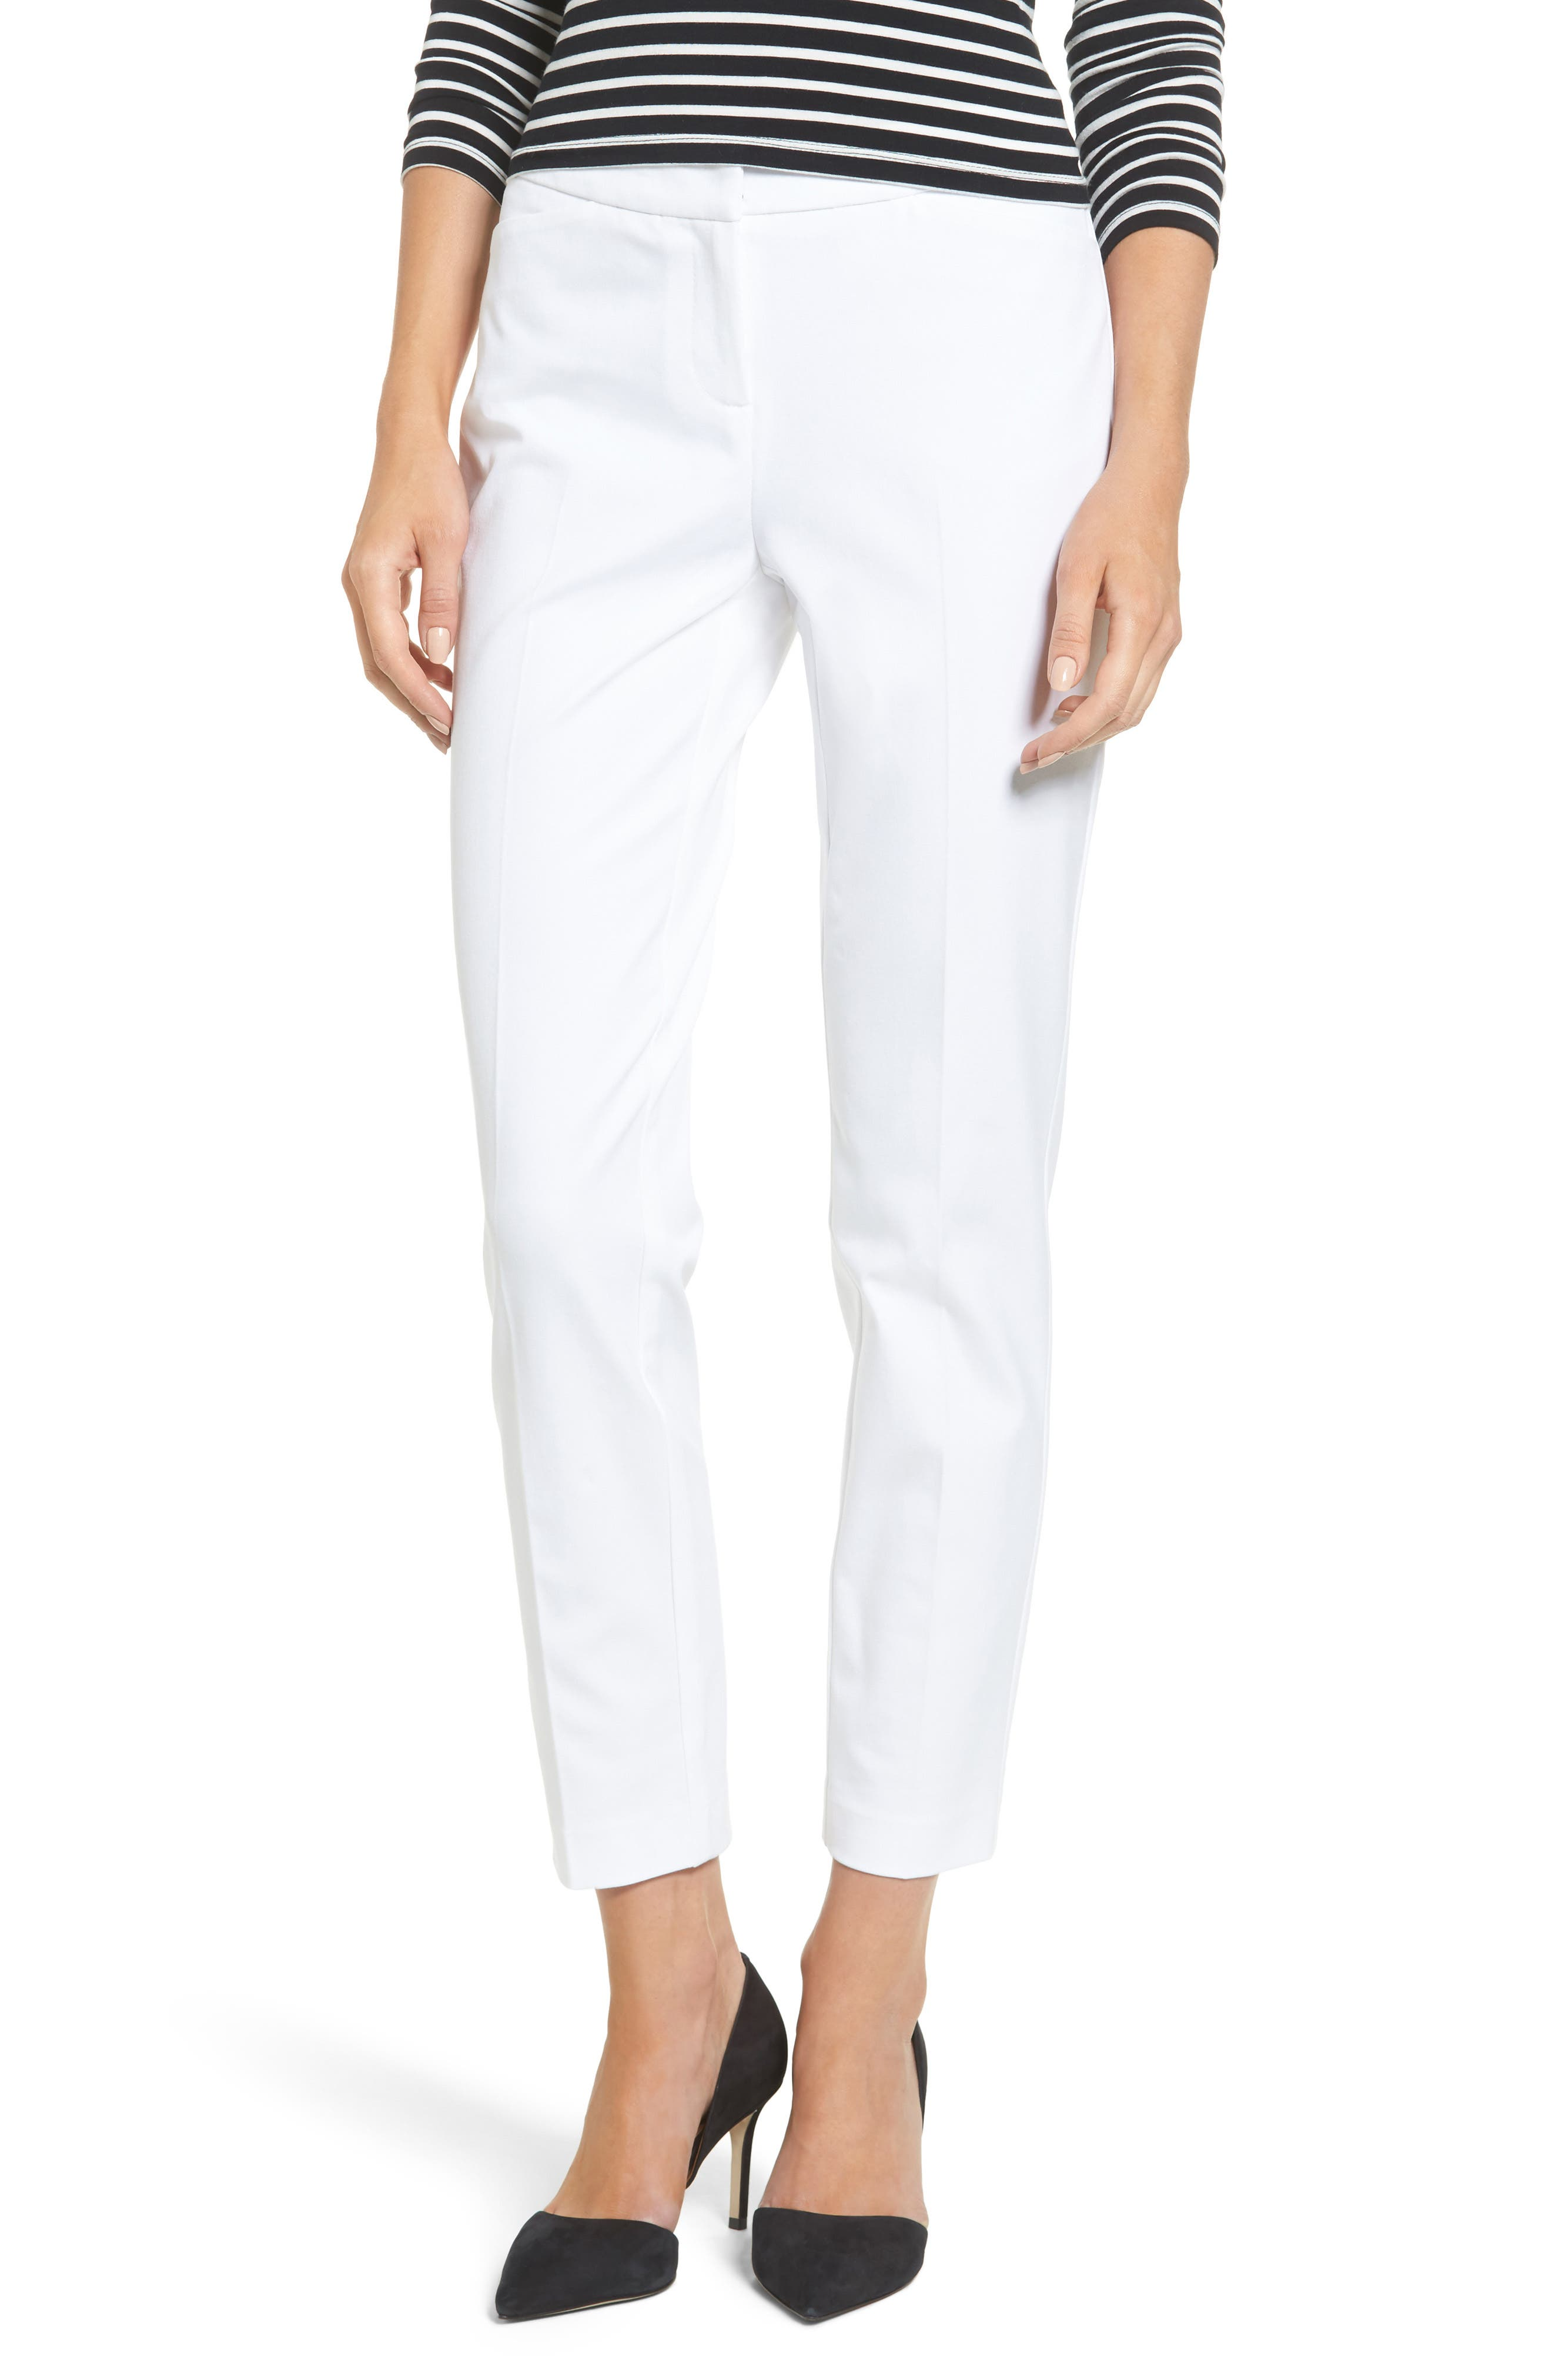 Stylish Georgia Alice Black Palm Trousers For Women Selling Well